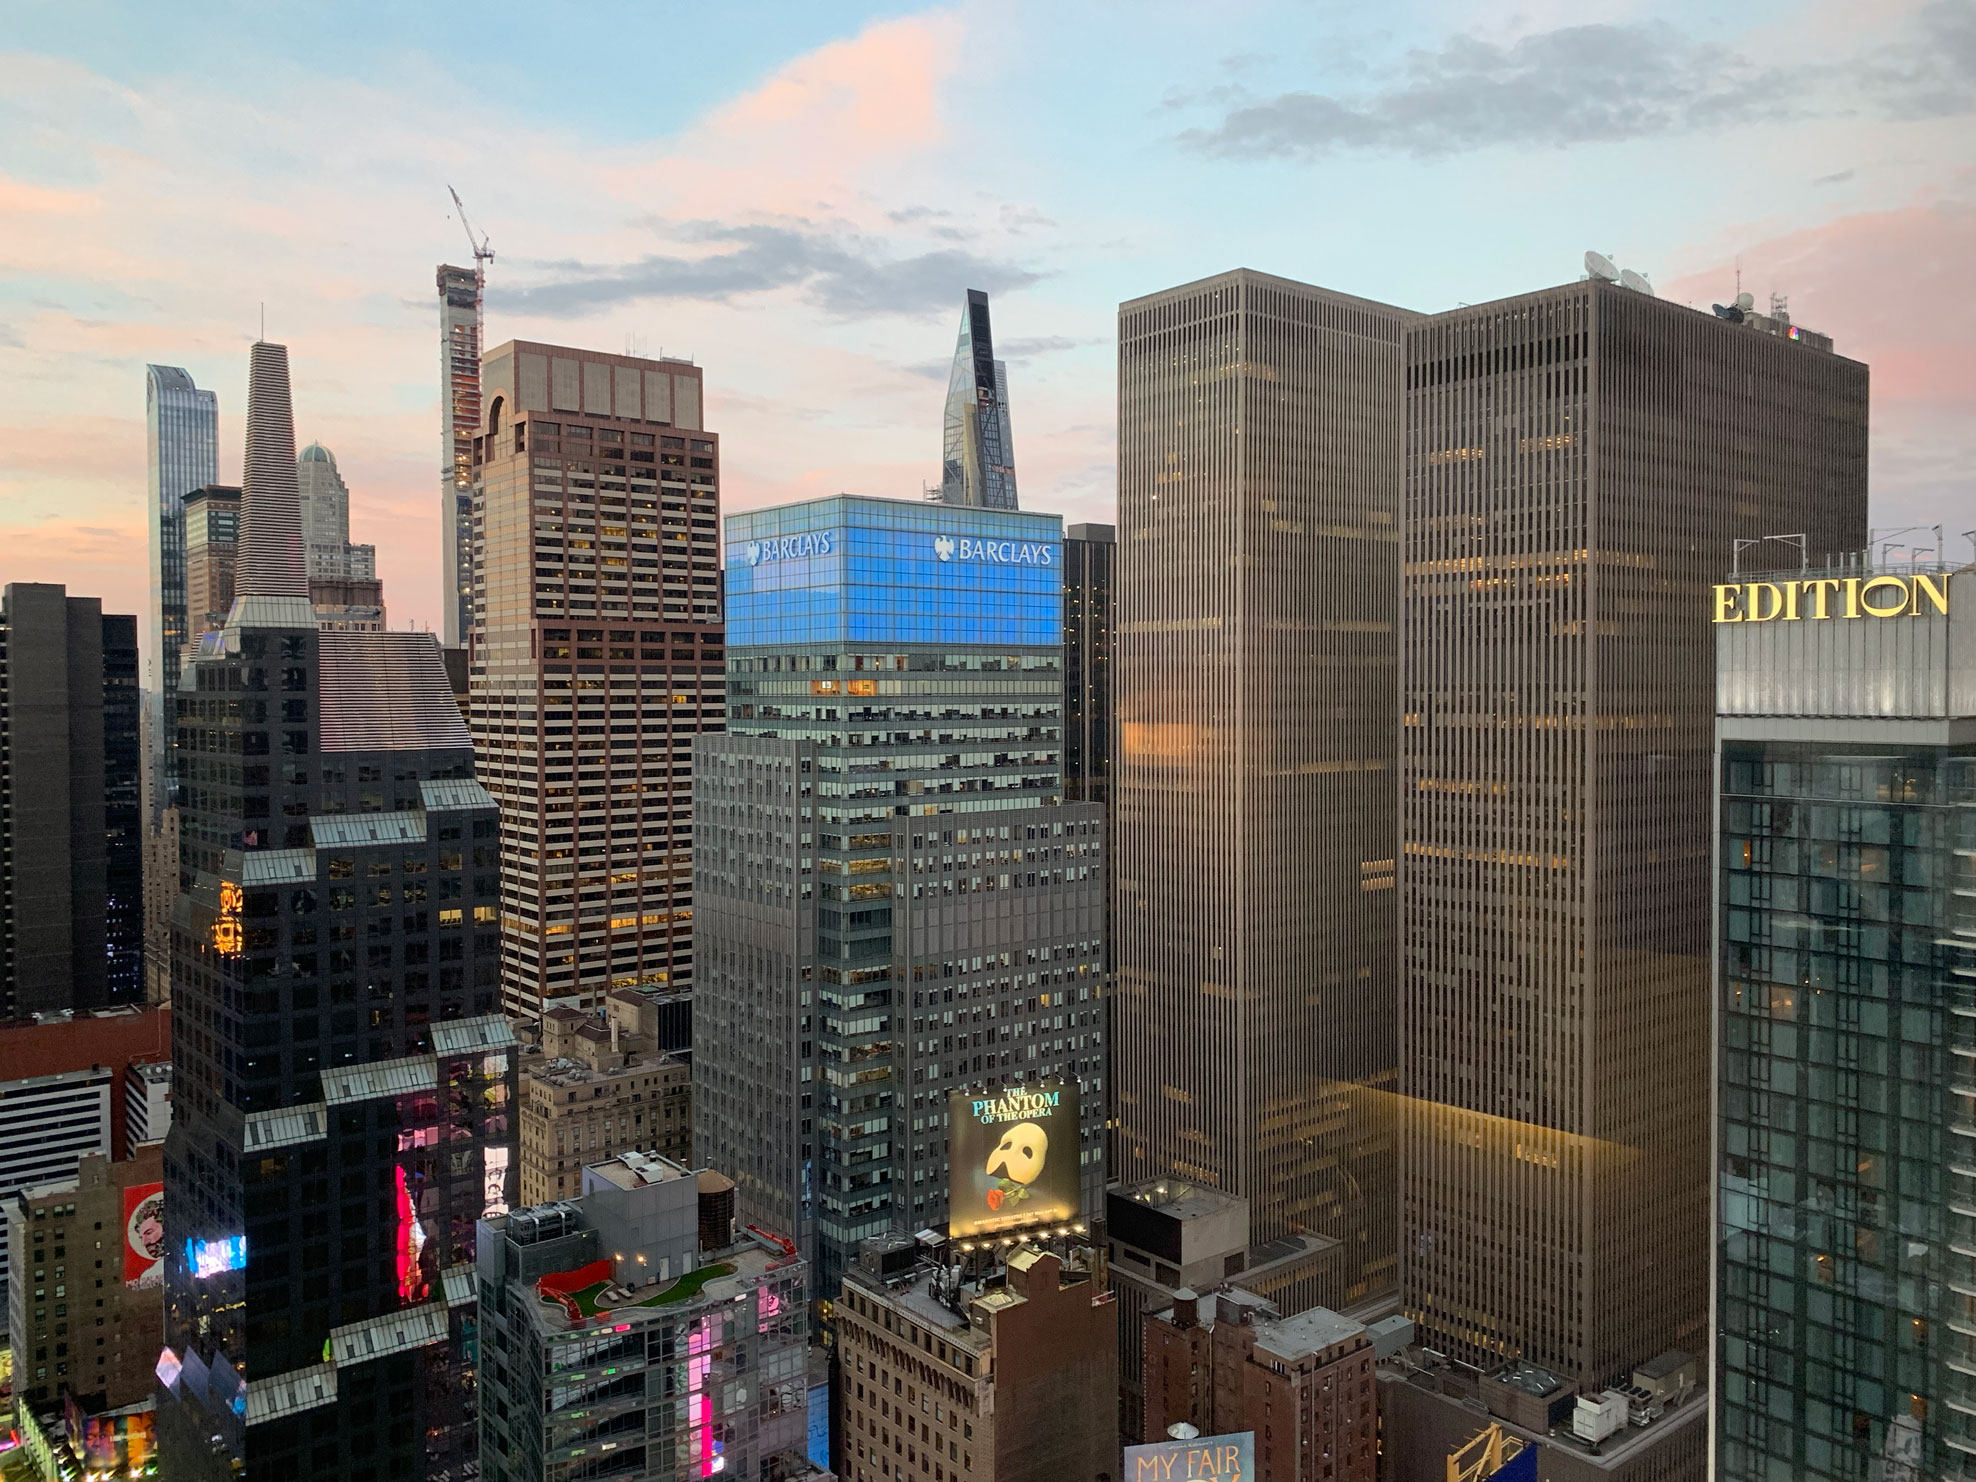 nyc-view-from-hotel-times-square.jpg?1559618263